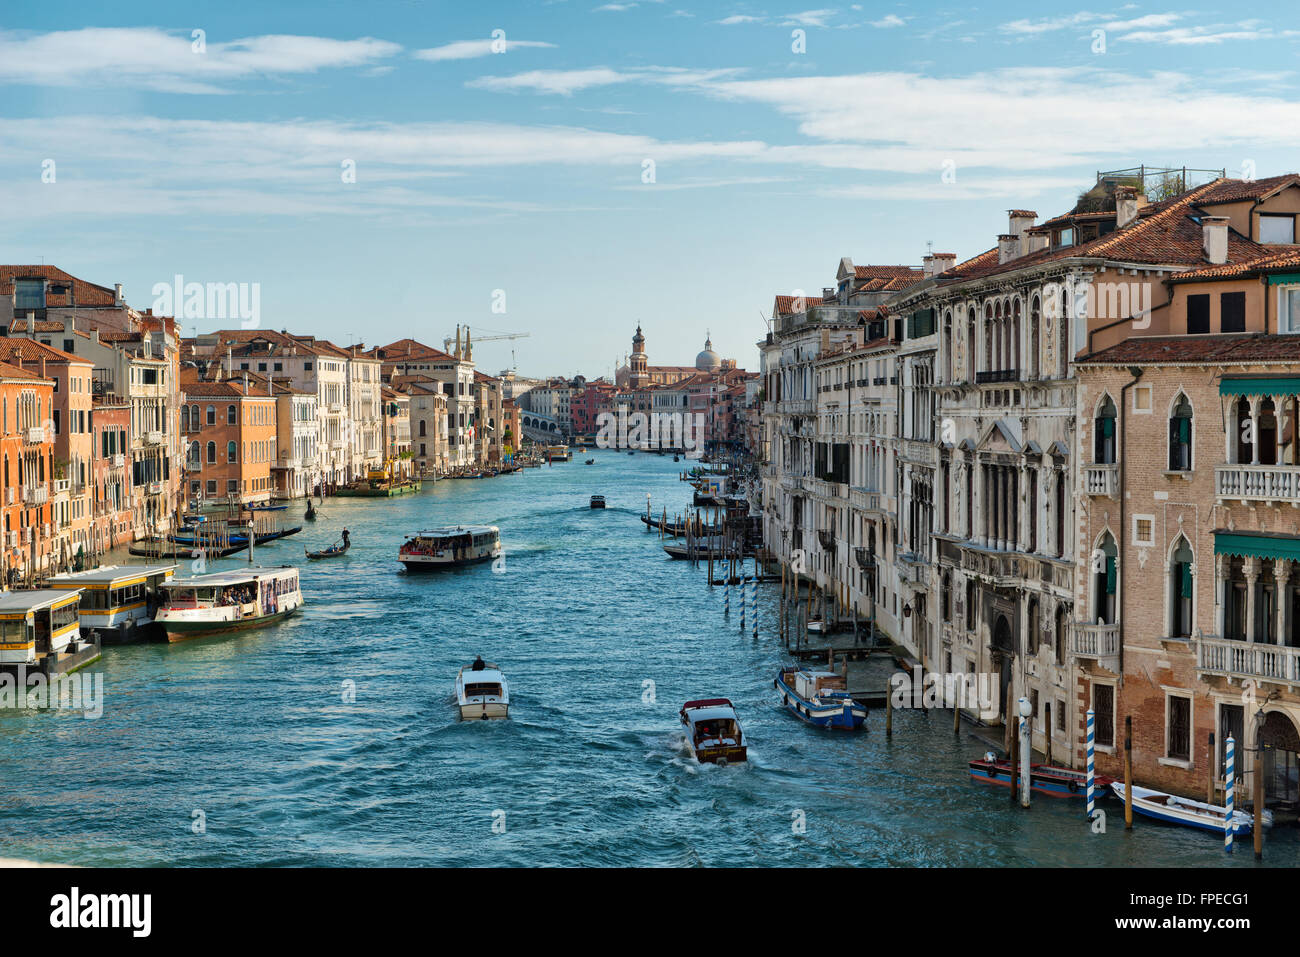 Boat traffic on the Grand Canal, Venice with a vaporetto and private boats plying the water between the historic - Stock Image